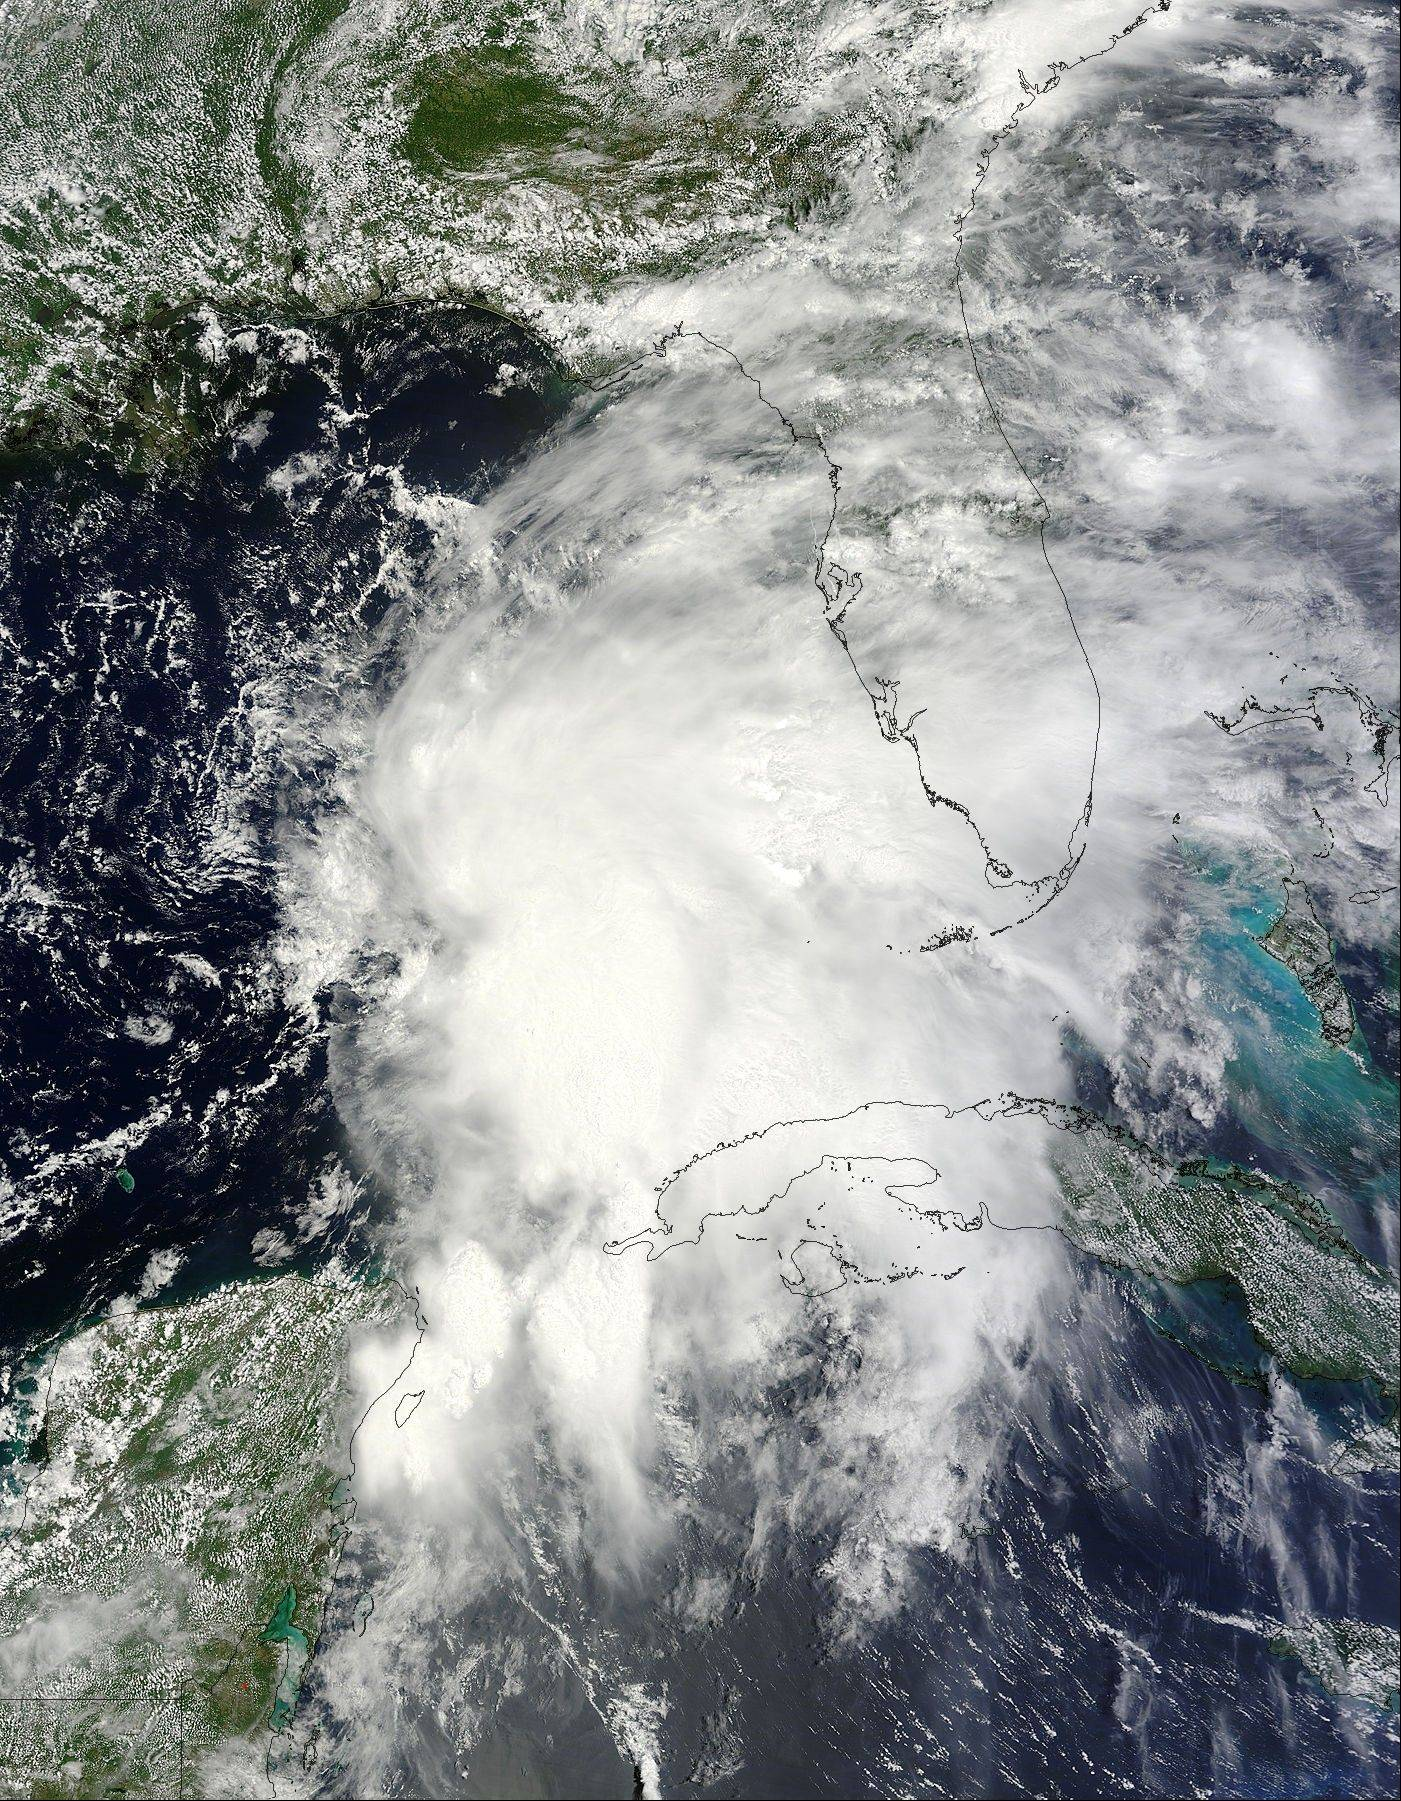 An image provided by NASA from the Terra satellite shows Tropical Storm Andrea as it moves across the Gulf of Mexico and approaches Florida's west coast Wednesday. Heavy rain poured across much of Florida on Thursday as the first tropical storm of the Atlantic hurricane season headed toward the state.